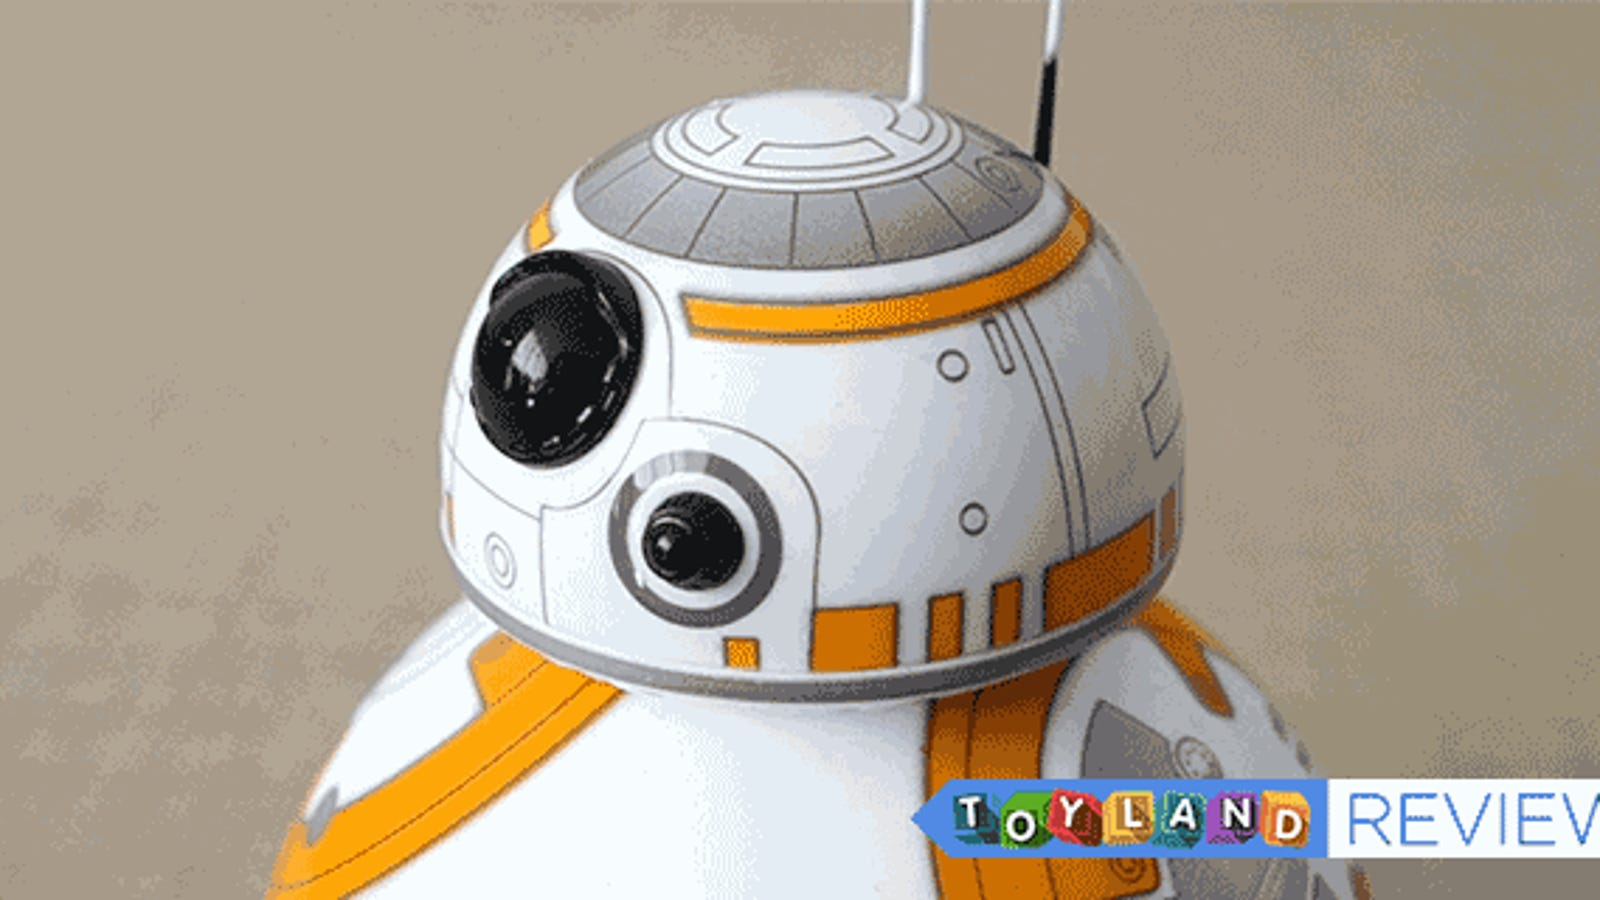 Sphero BB-8 Review: This Is the Coolest Star Wars Toy Ever